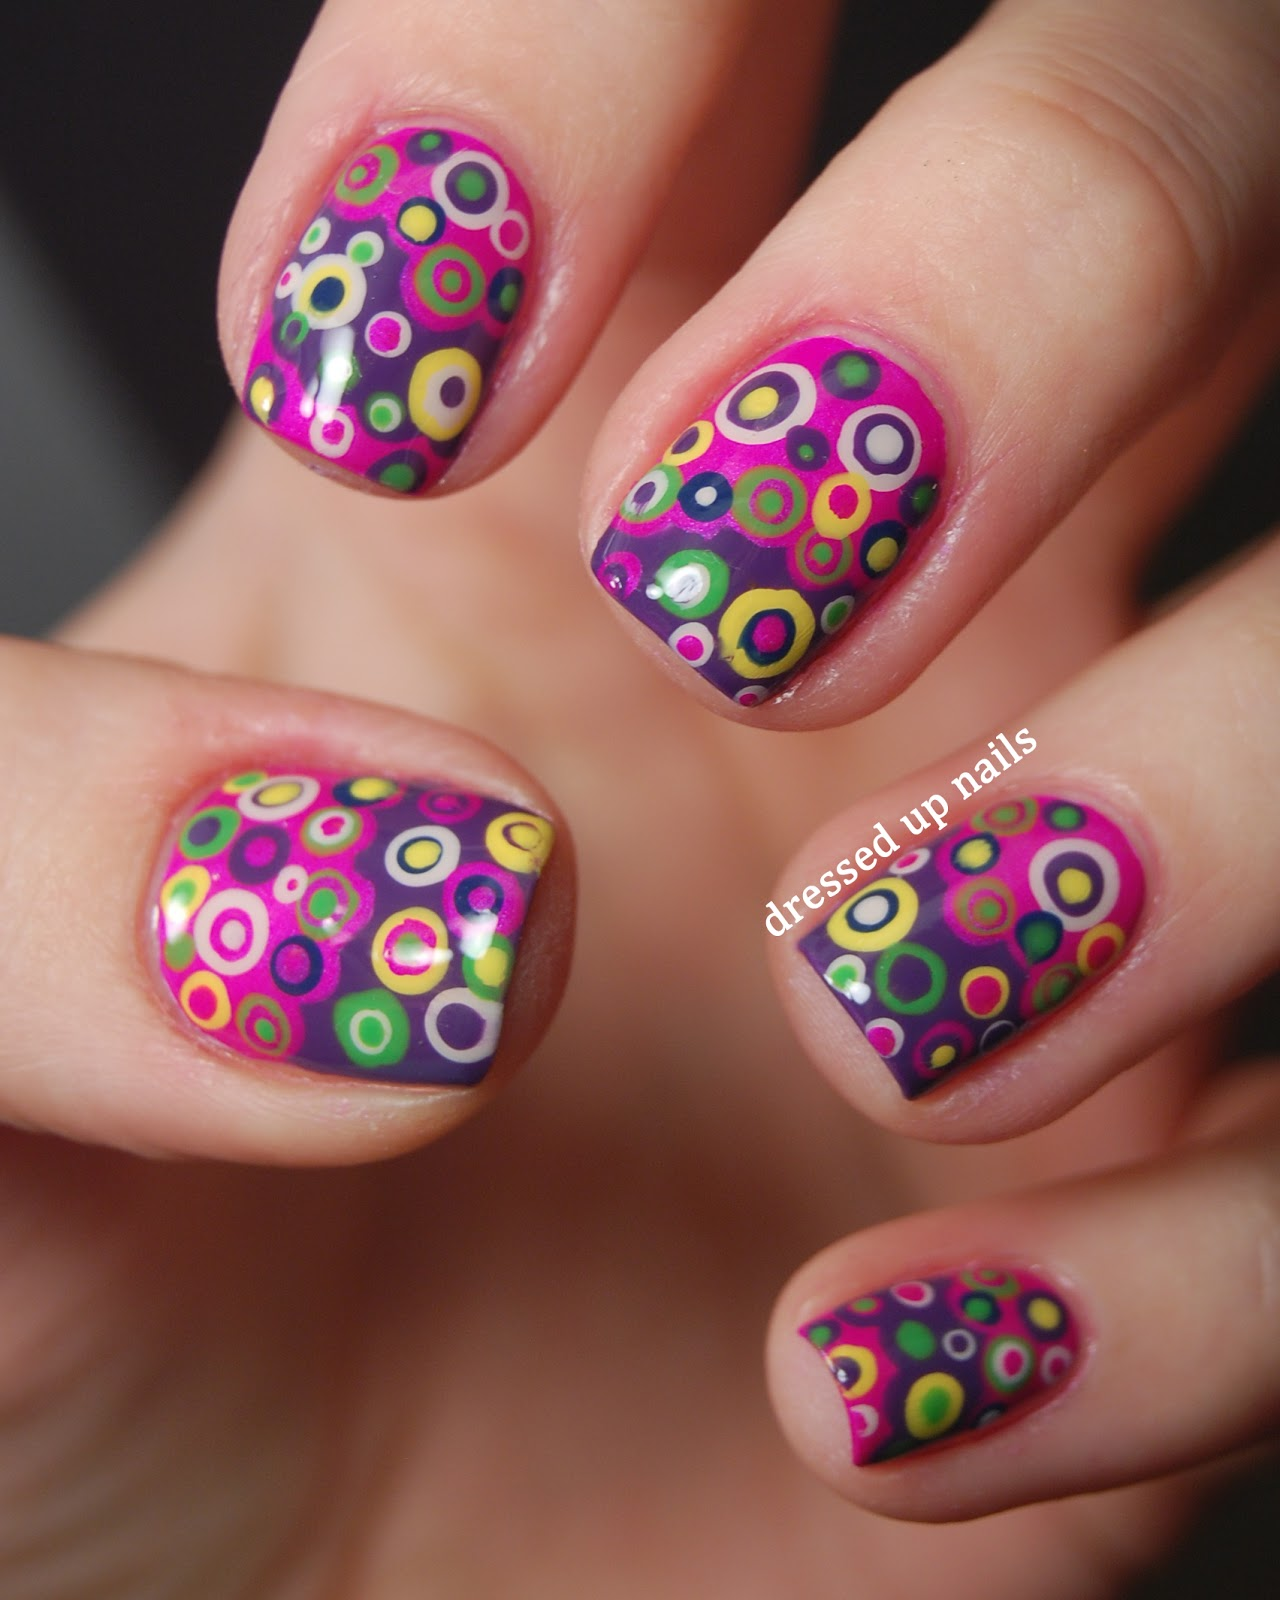 The Astonishing Purple flower nail arts Image